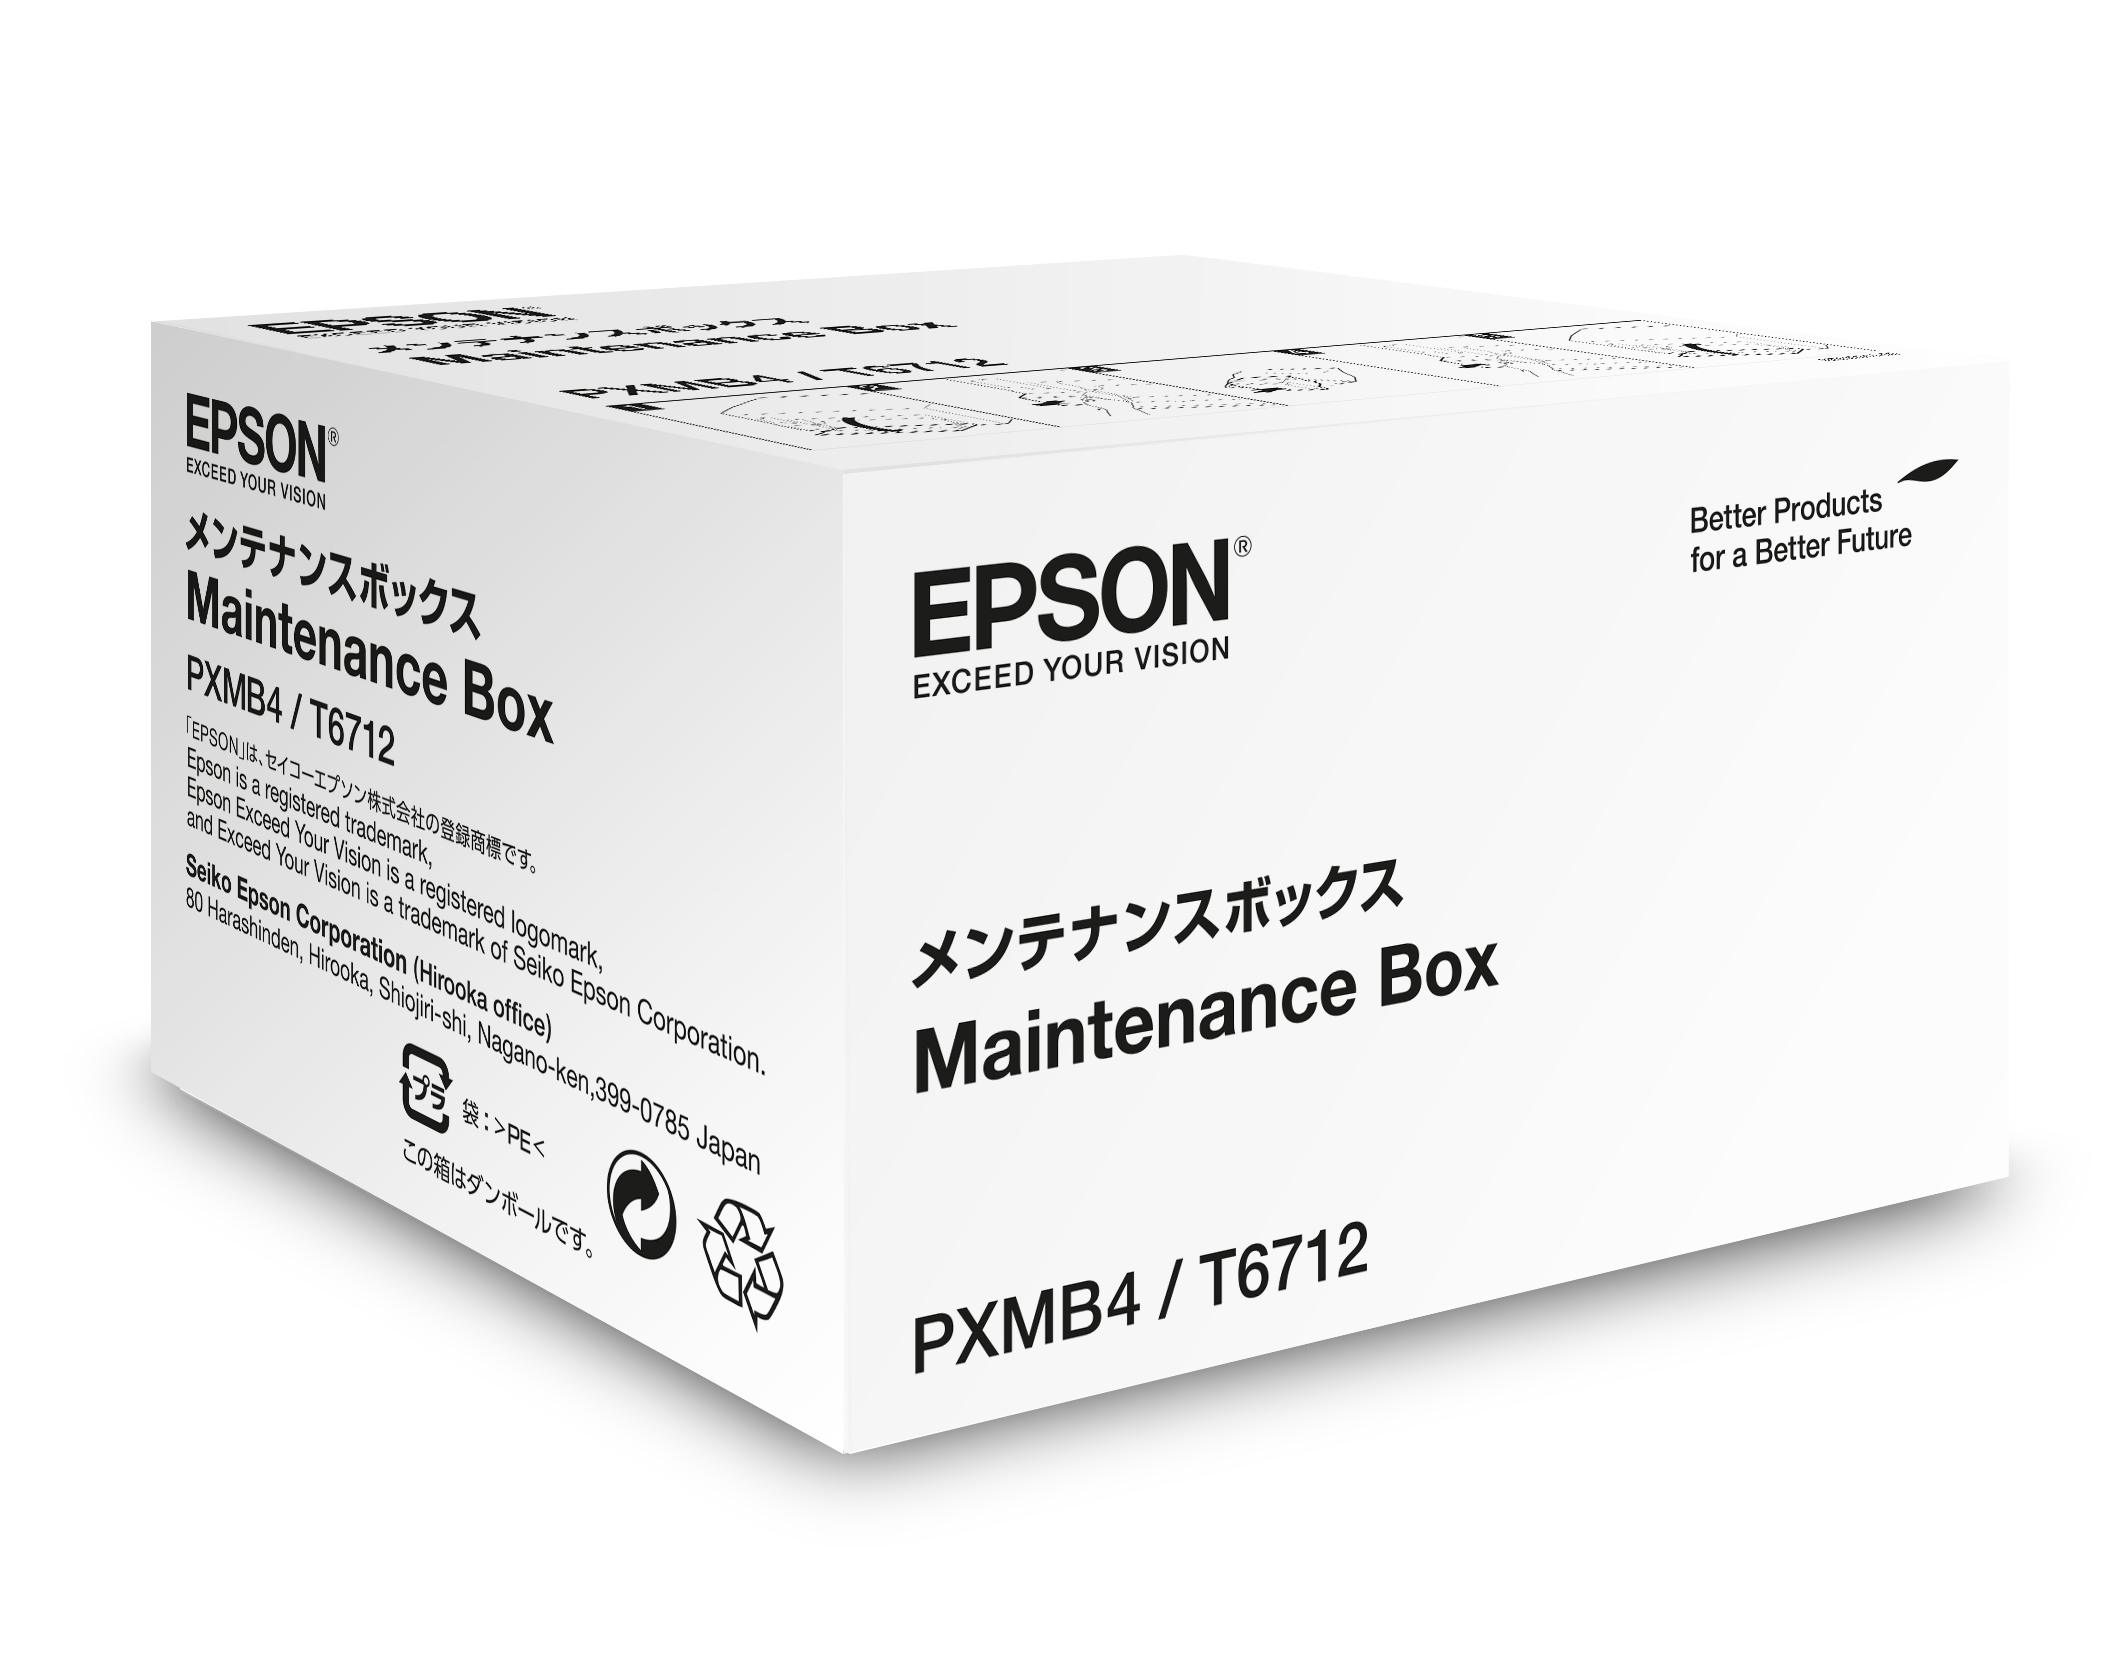 epson Wf8xxx Maintenance Box C13t671200 - AD01